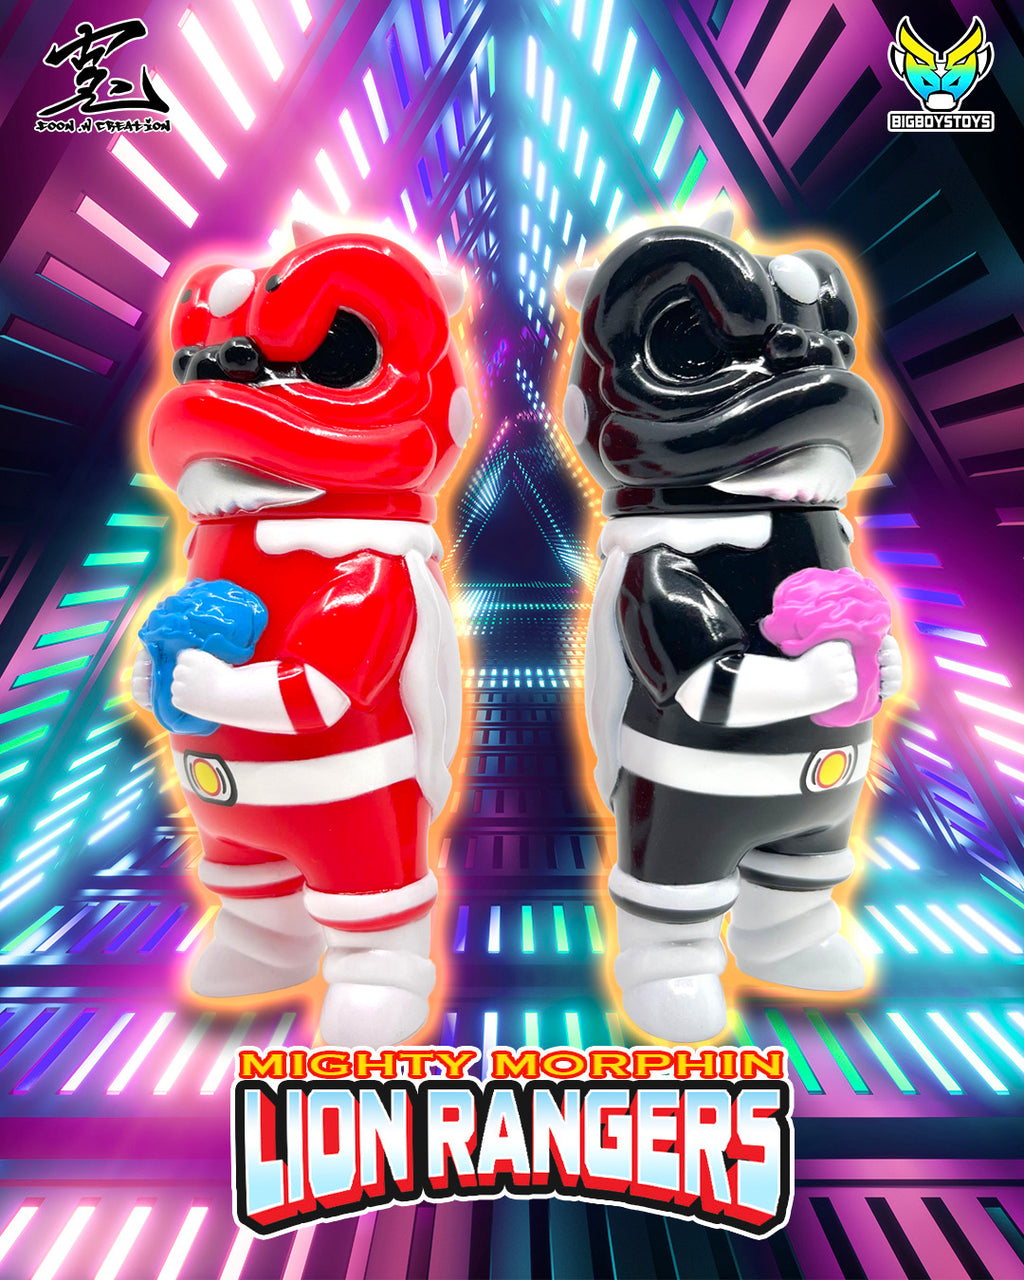 Lion Rangers (Red & Black Rangers set)